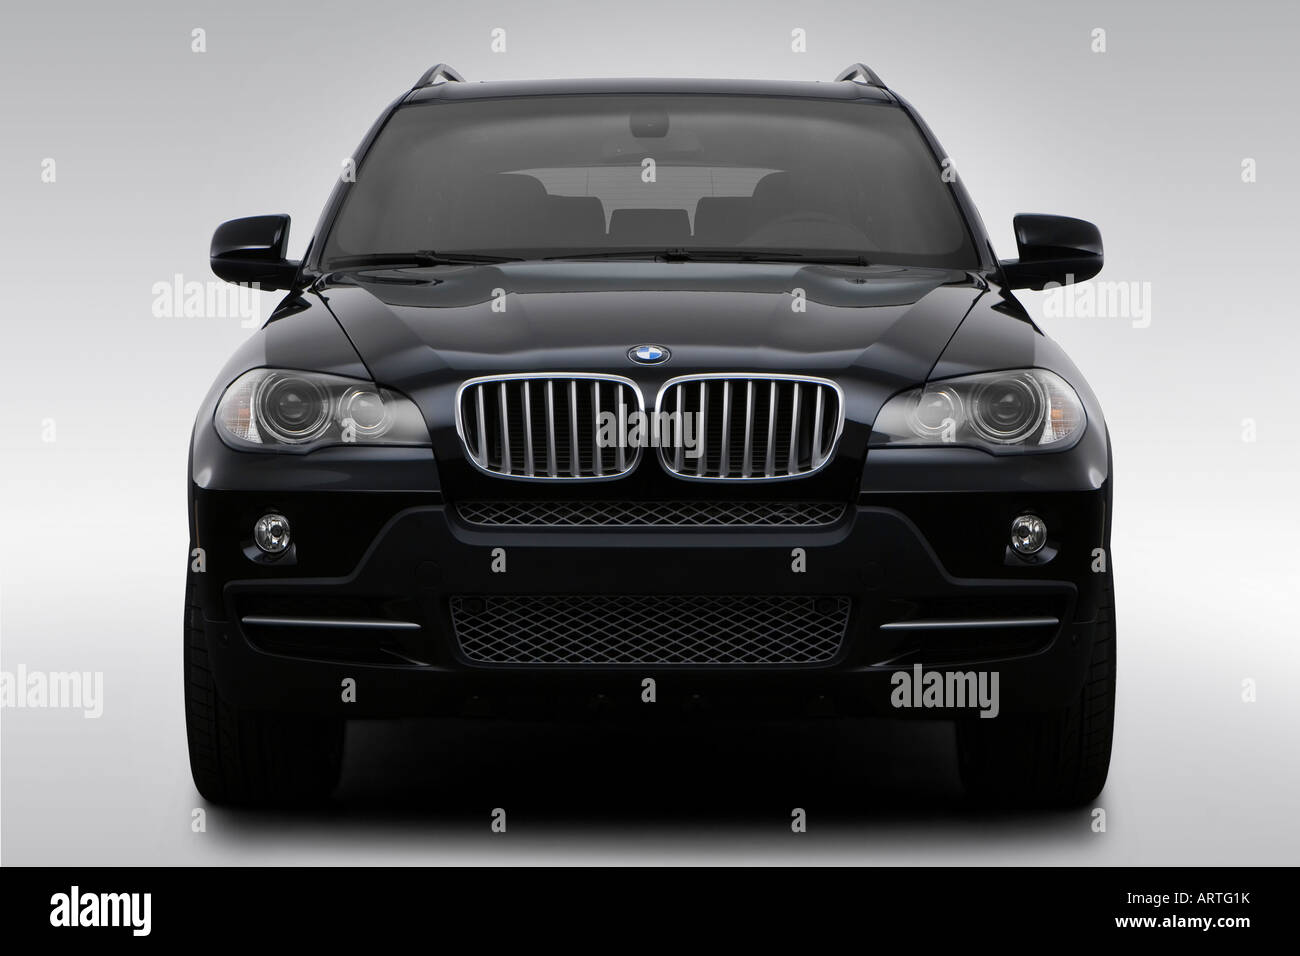 2008 BMW X5 4.8i in Black - Low/Wide Front - Stock Image